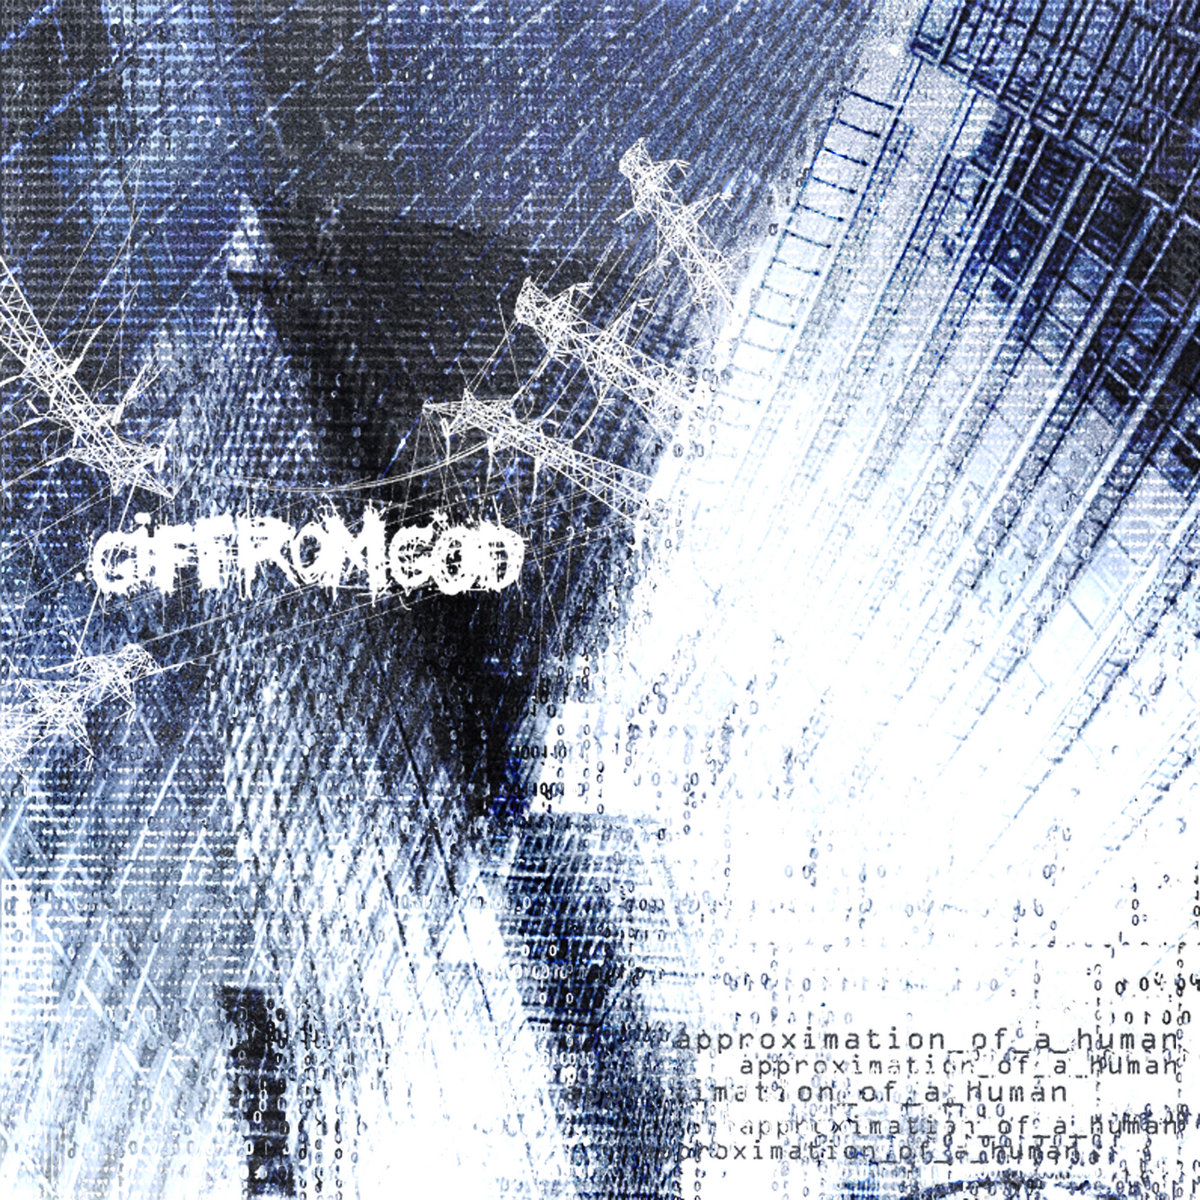 https://giffromgod.bandcamp.com/album/approximation-of-a-human